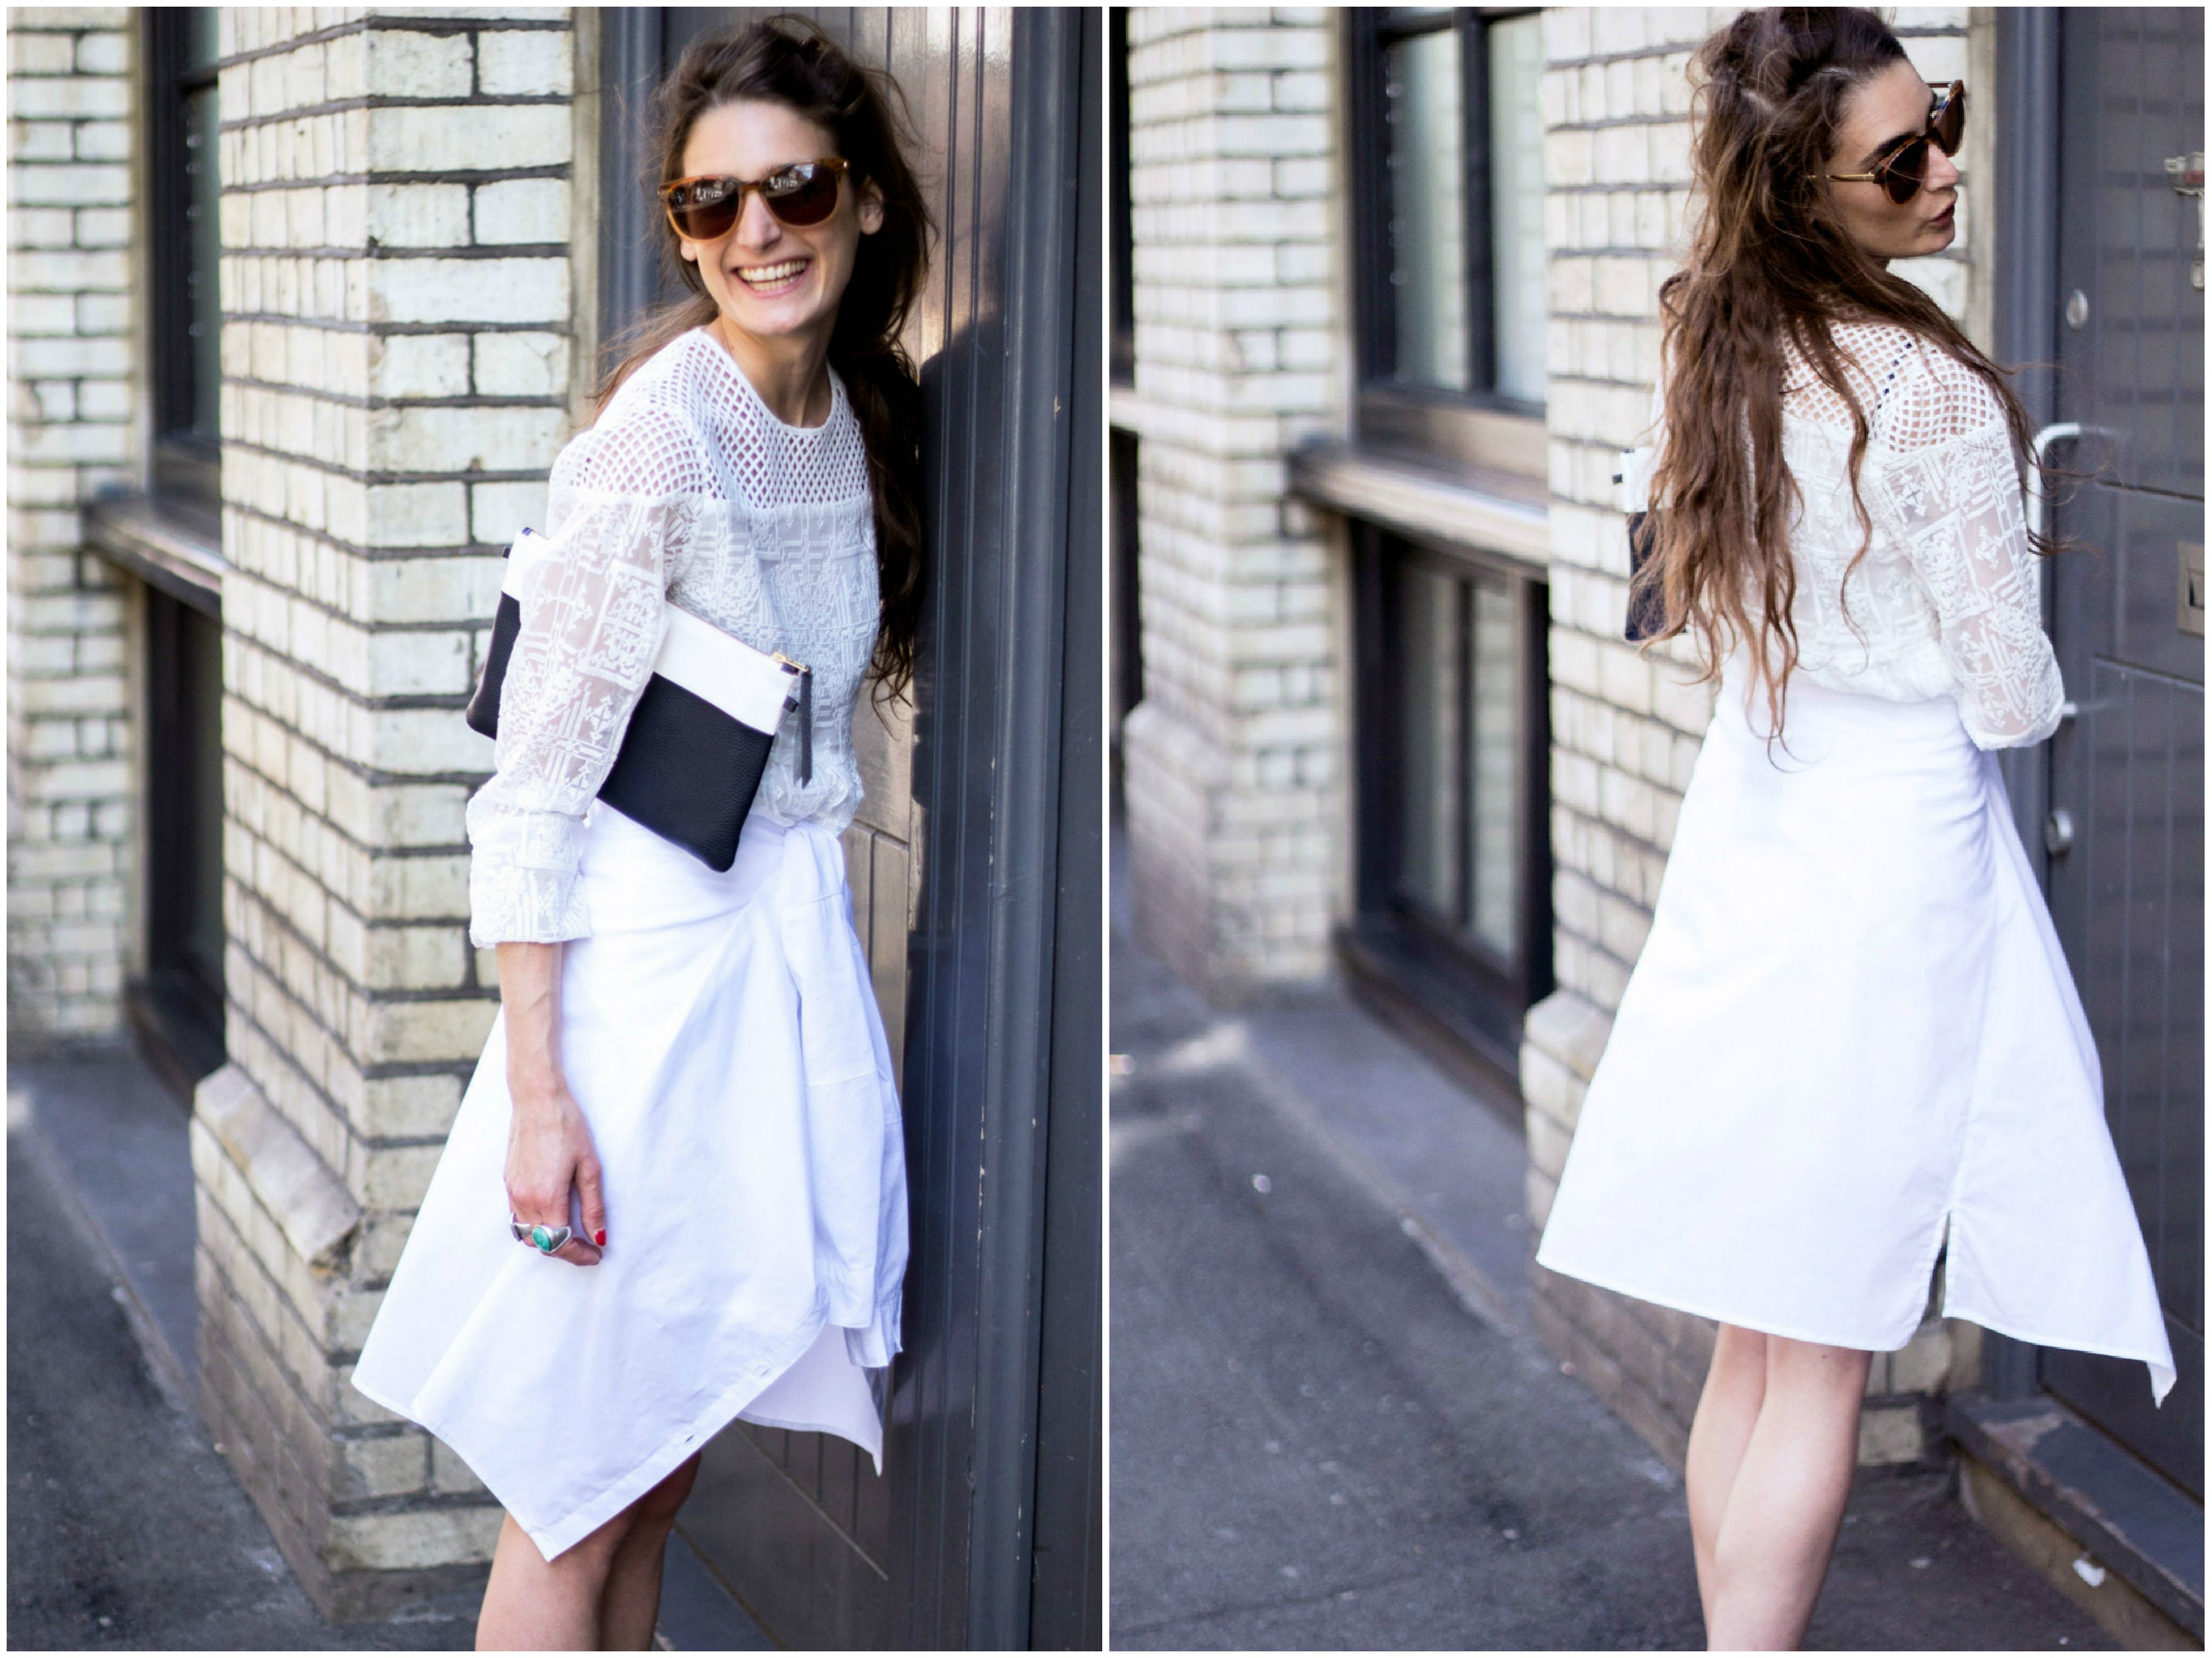 White Shirt Lace Dress Street Style